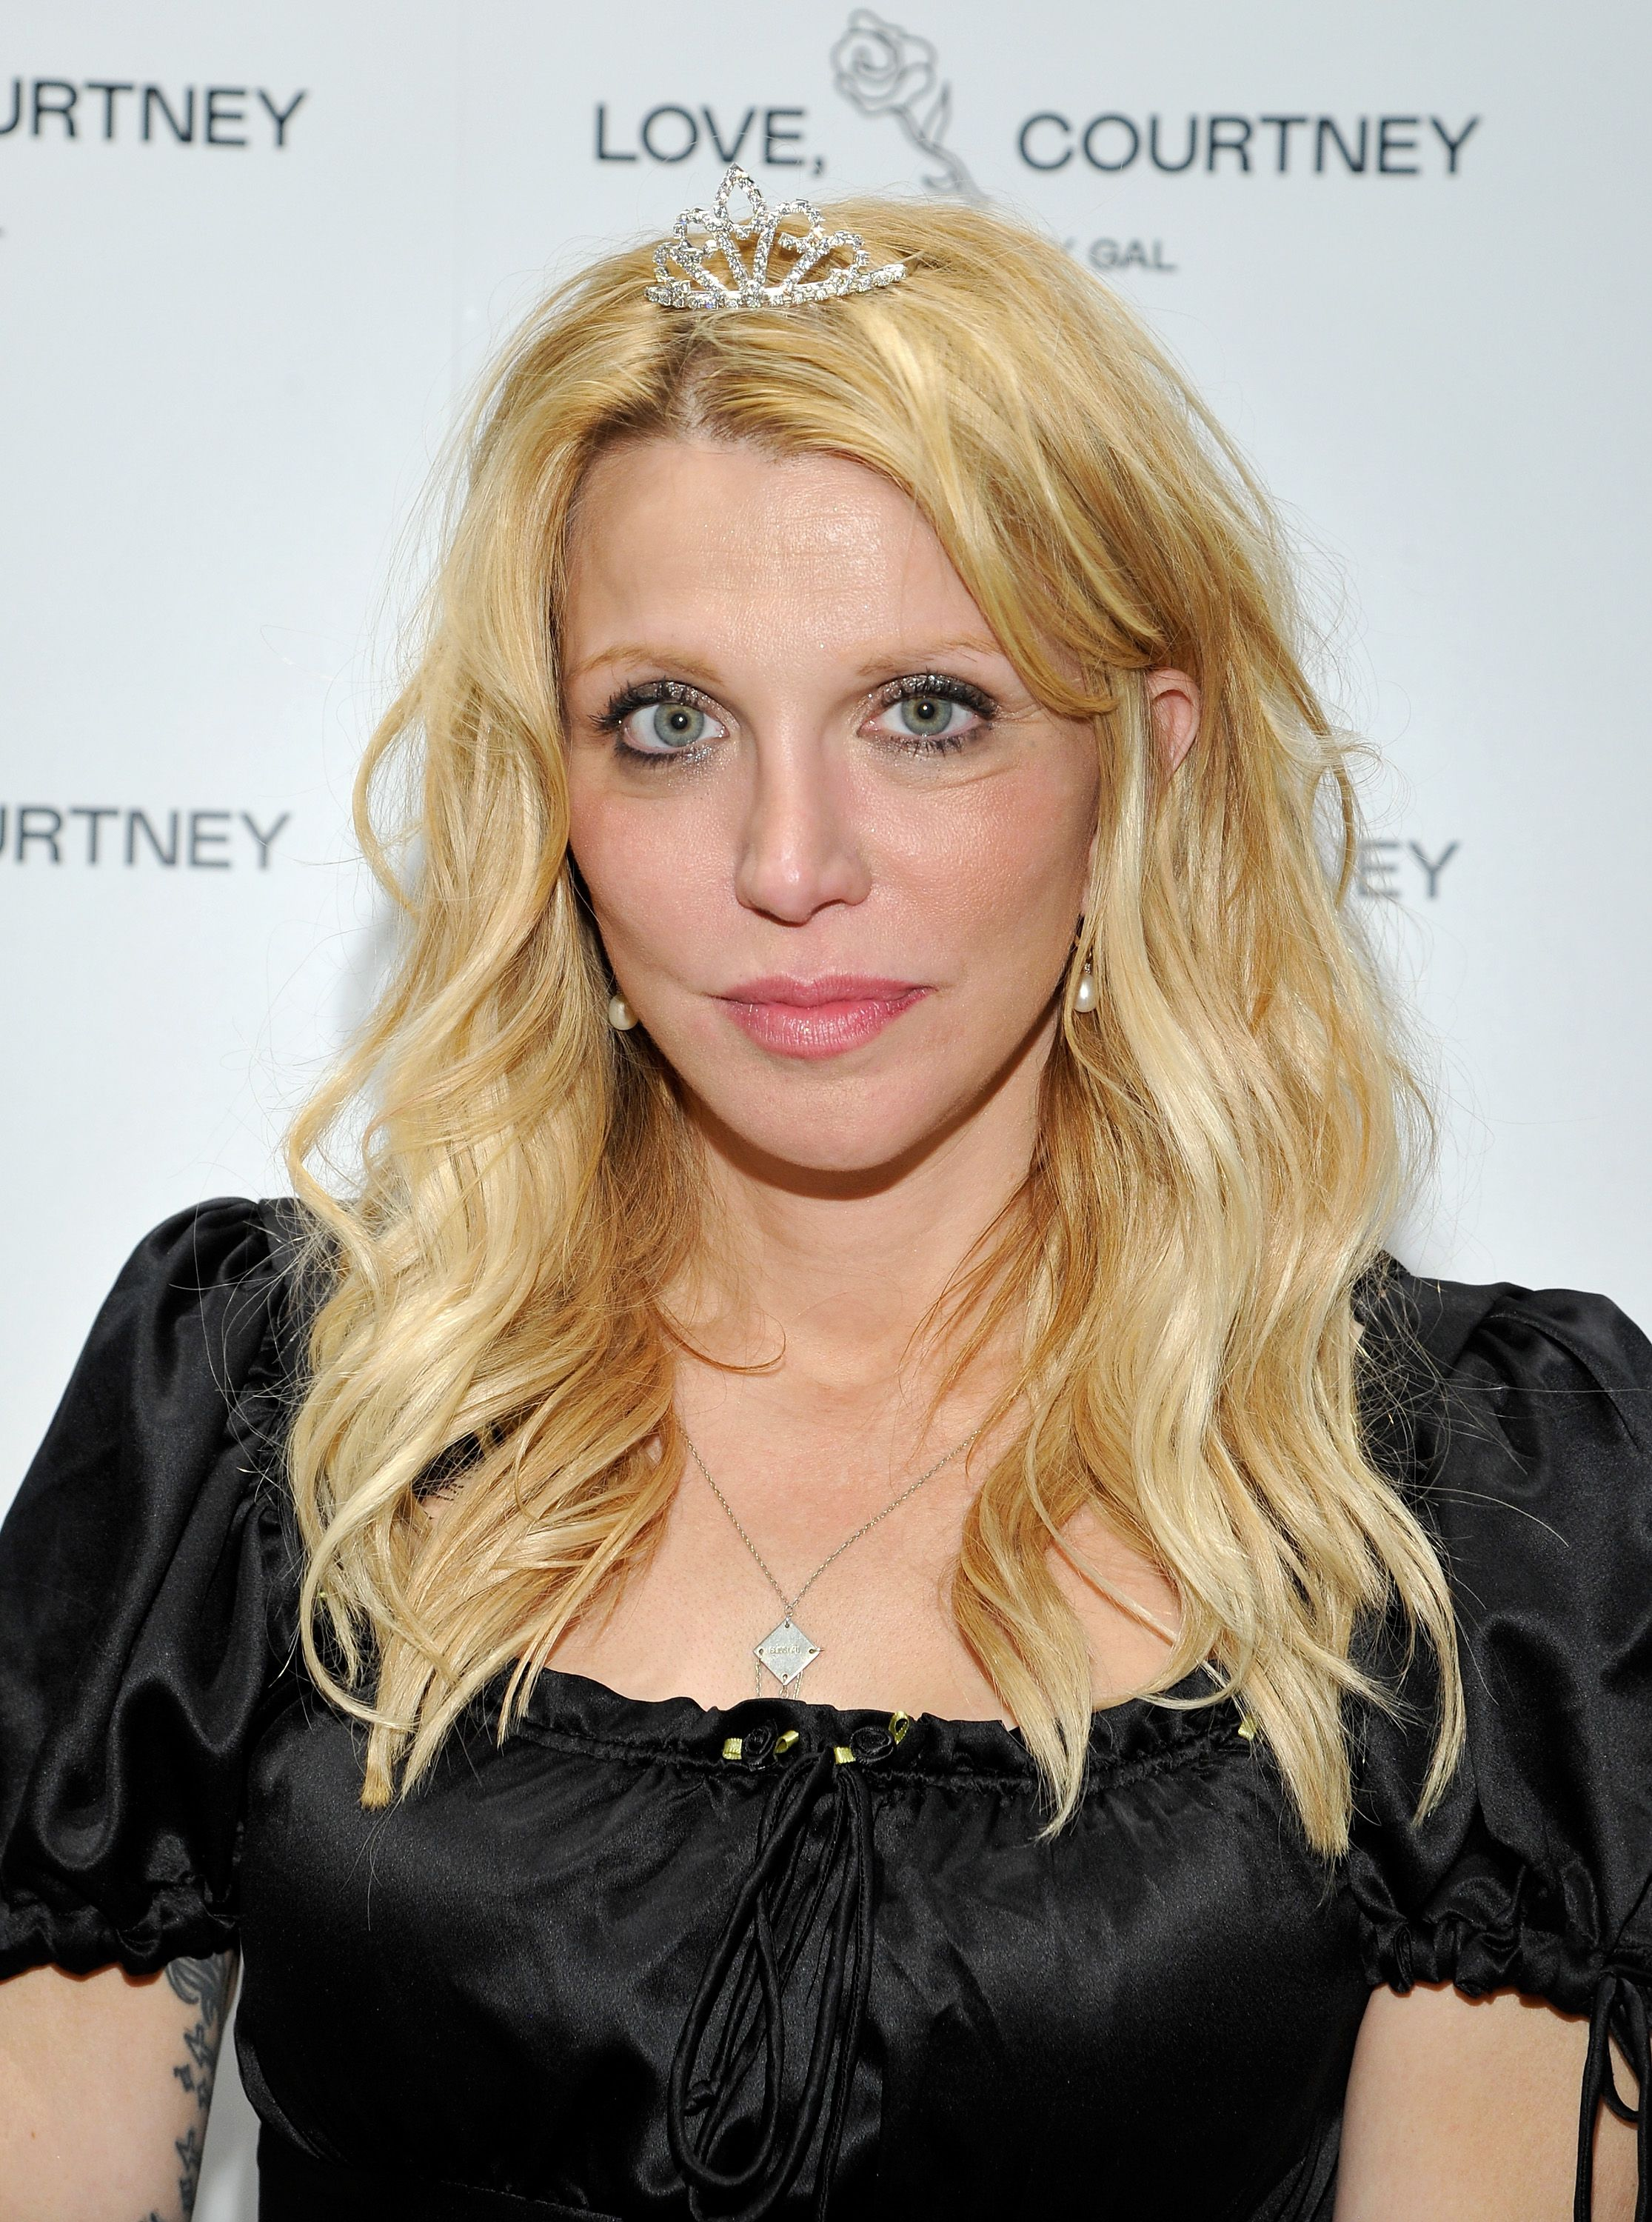 Courtney Love attends Love, Courtney by Nasty Gal launch party. | Source: Getty Images